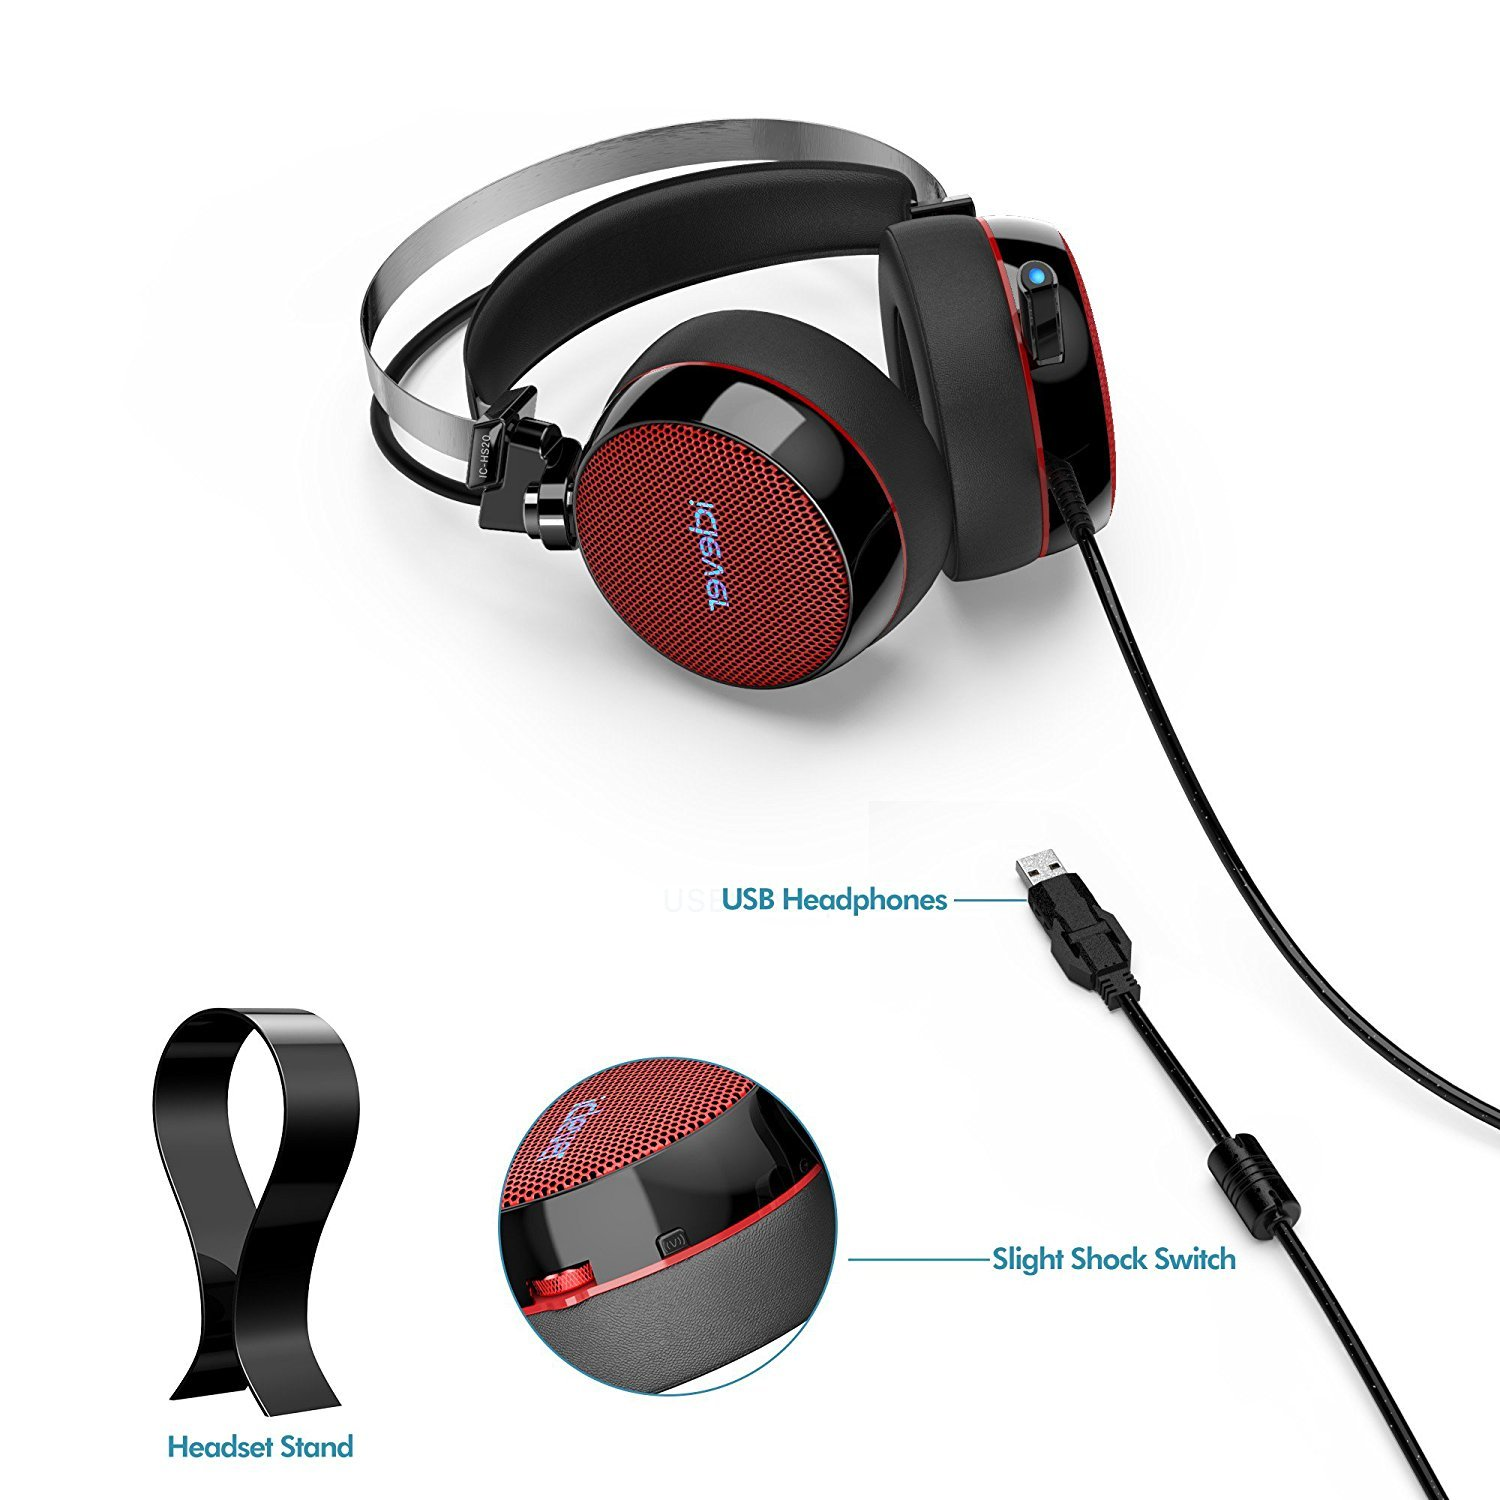 Zip Up Headphones Amazoncom Iclever 71 Surround Sound Gaming Headphones With